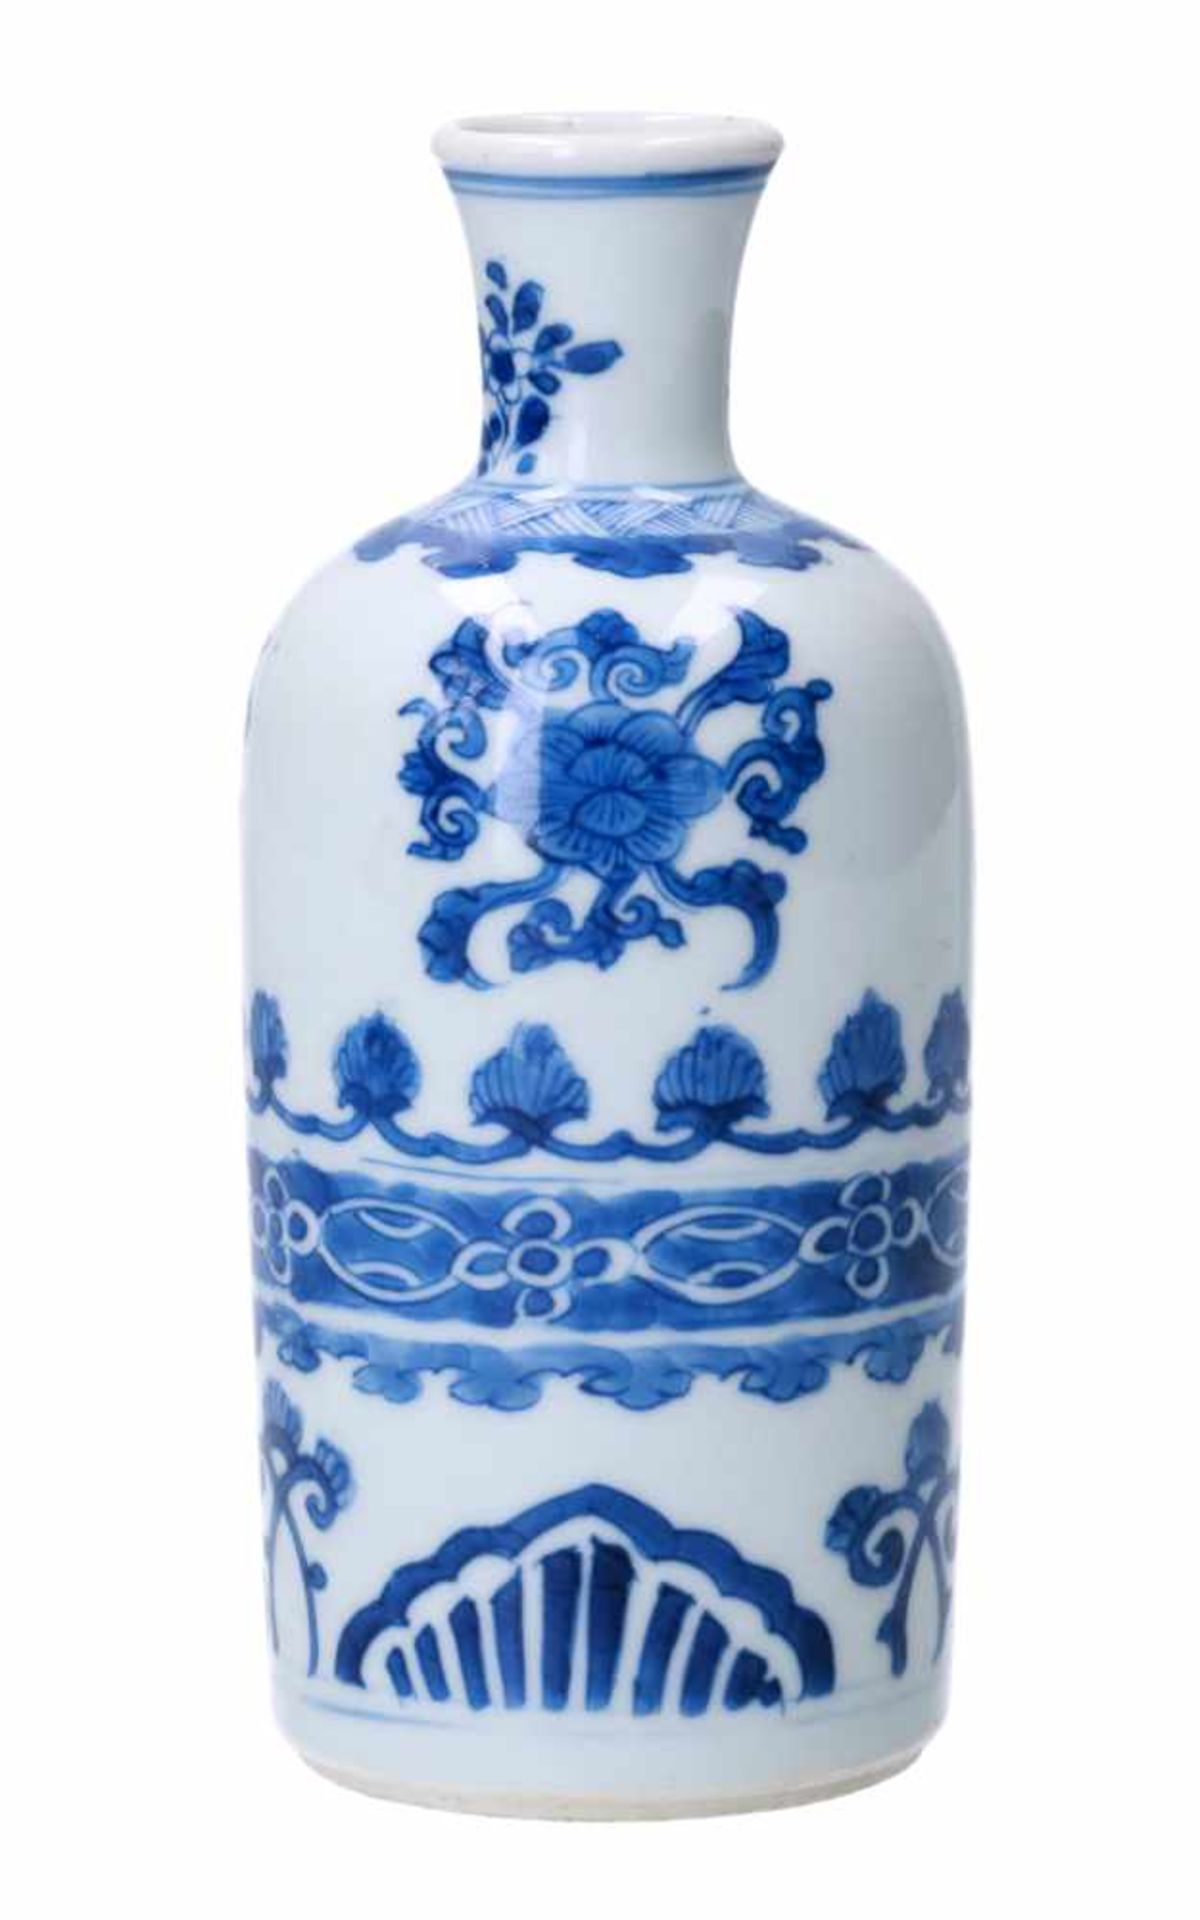 A blue and white porcelain vase, decorated with flowers and patterns. Unmarked. China, Kangxi. - Bild 2 aus 4